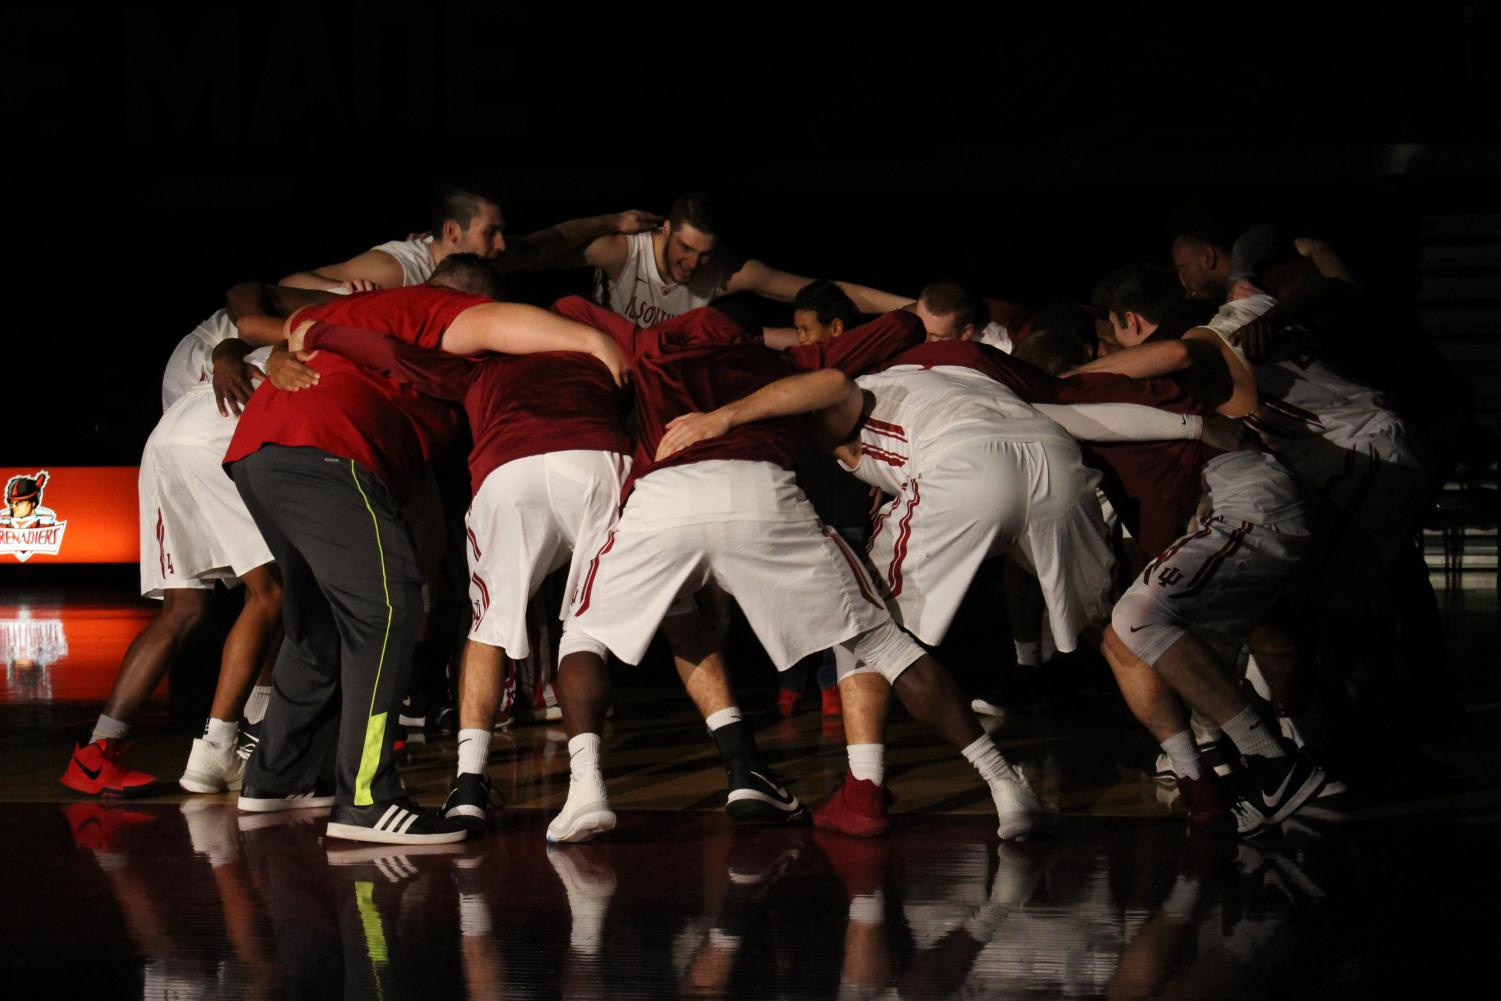 The+men%E2%80%99s+basketball+team+gathers+for+a+pre-game+huddle.